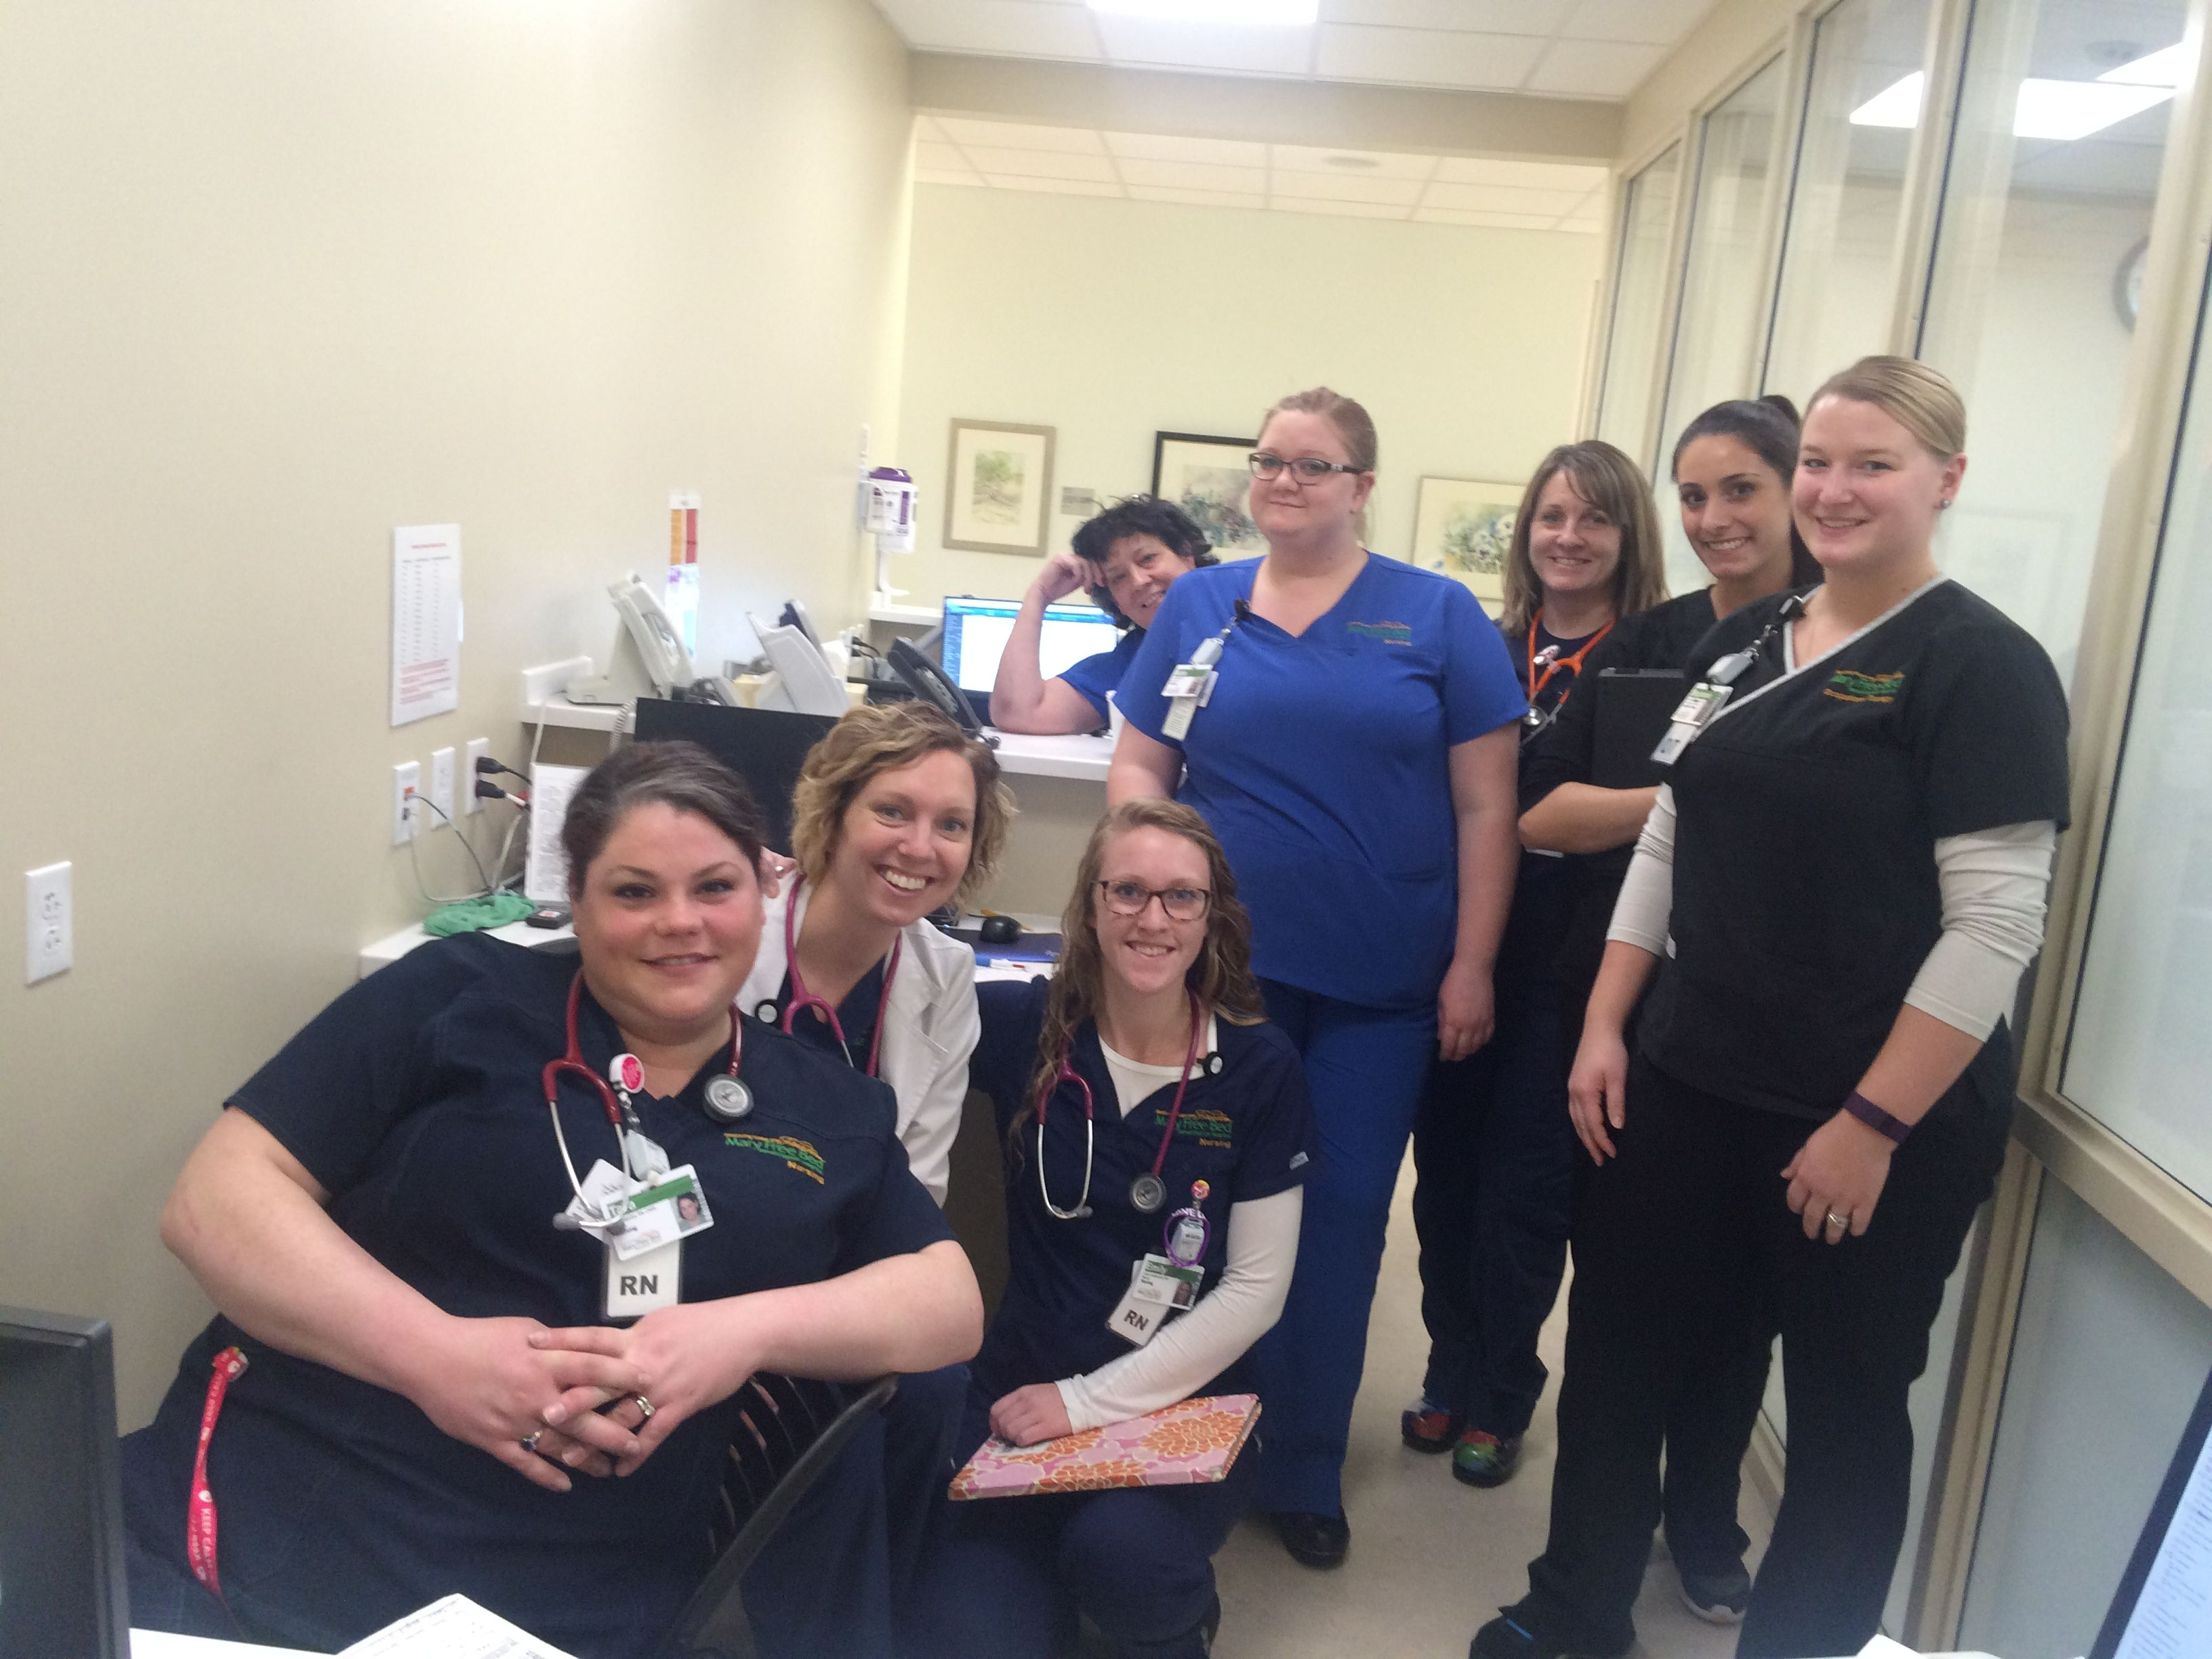 These nurses all their Mary Free Bed patients with